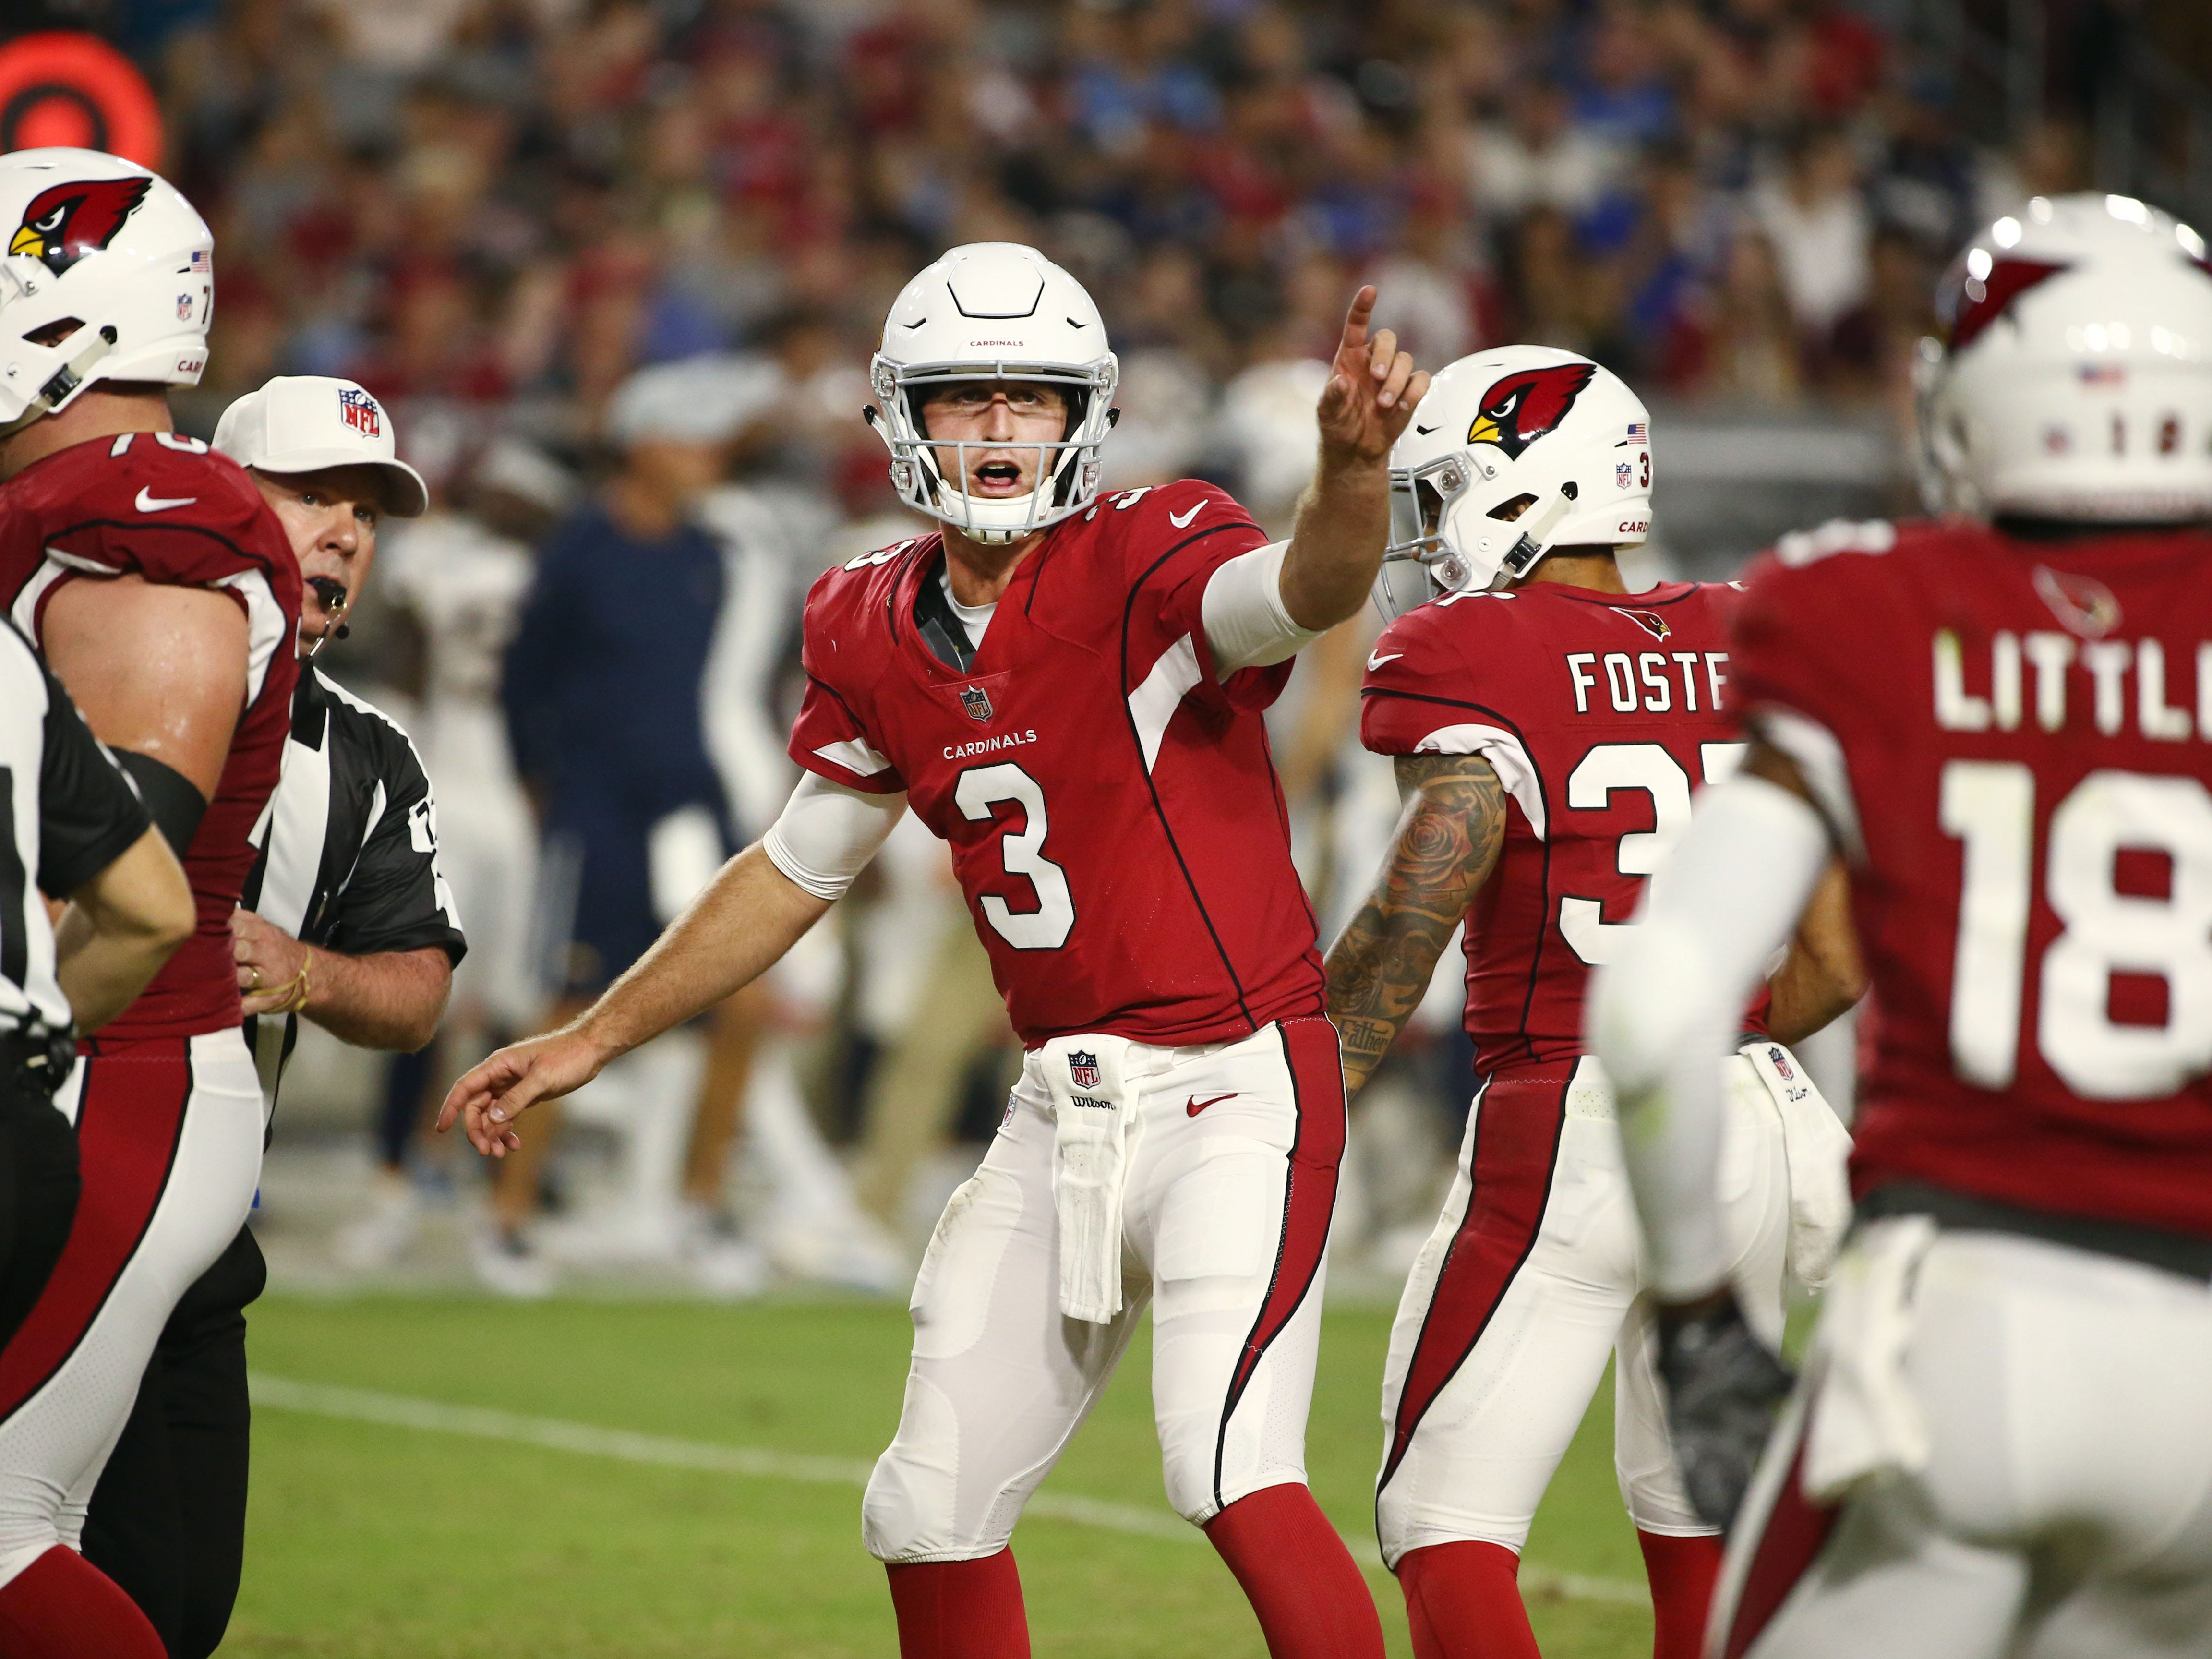 Arizona Cardinals Josh Rosen tries to hurry a play against the L.A. Chargers in the first half during a preseason NFL football game on Aug. 11, 2018 at University of Phoenix Stadium in Glendale, Ariz.